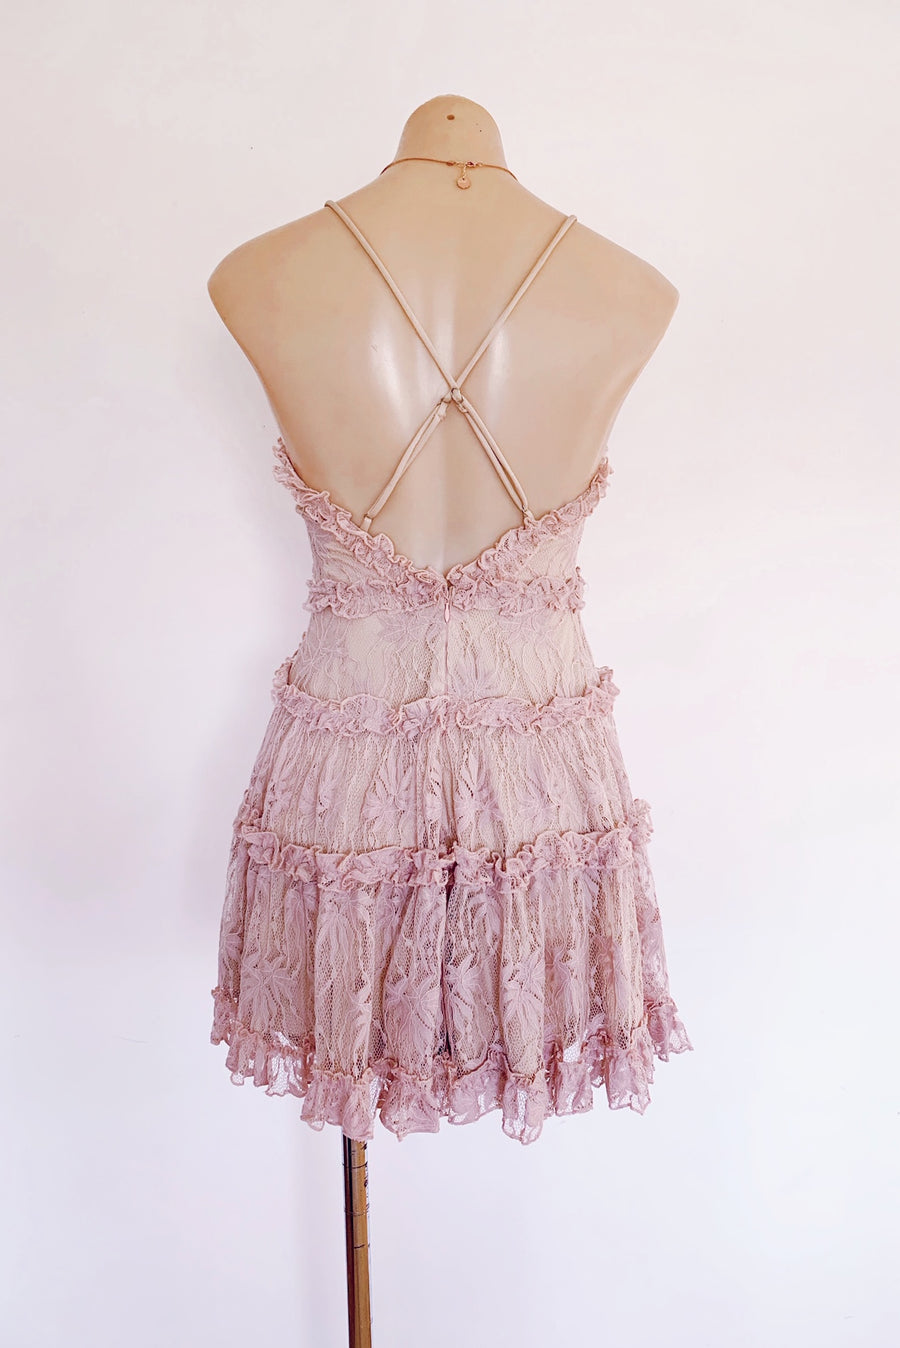 Everlee Dress in Blush for $79.95